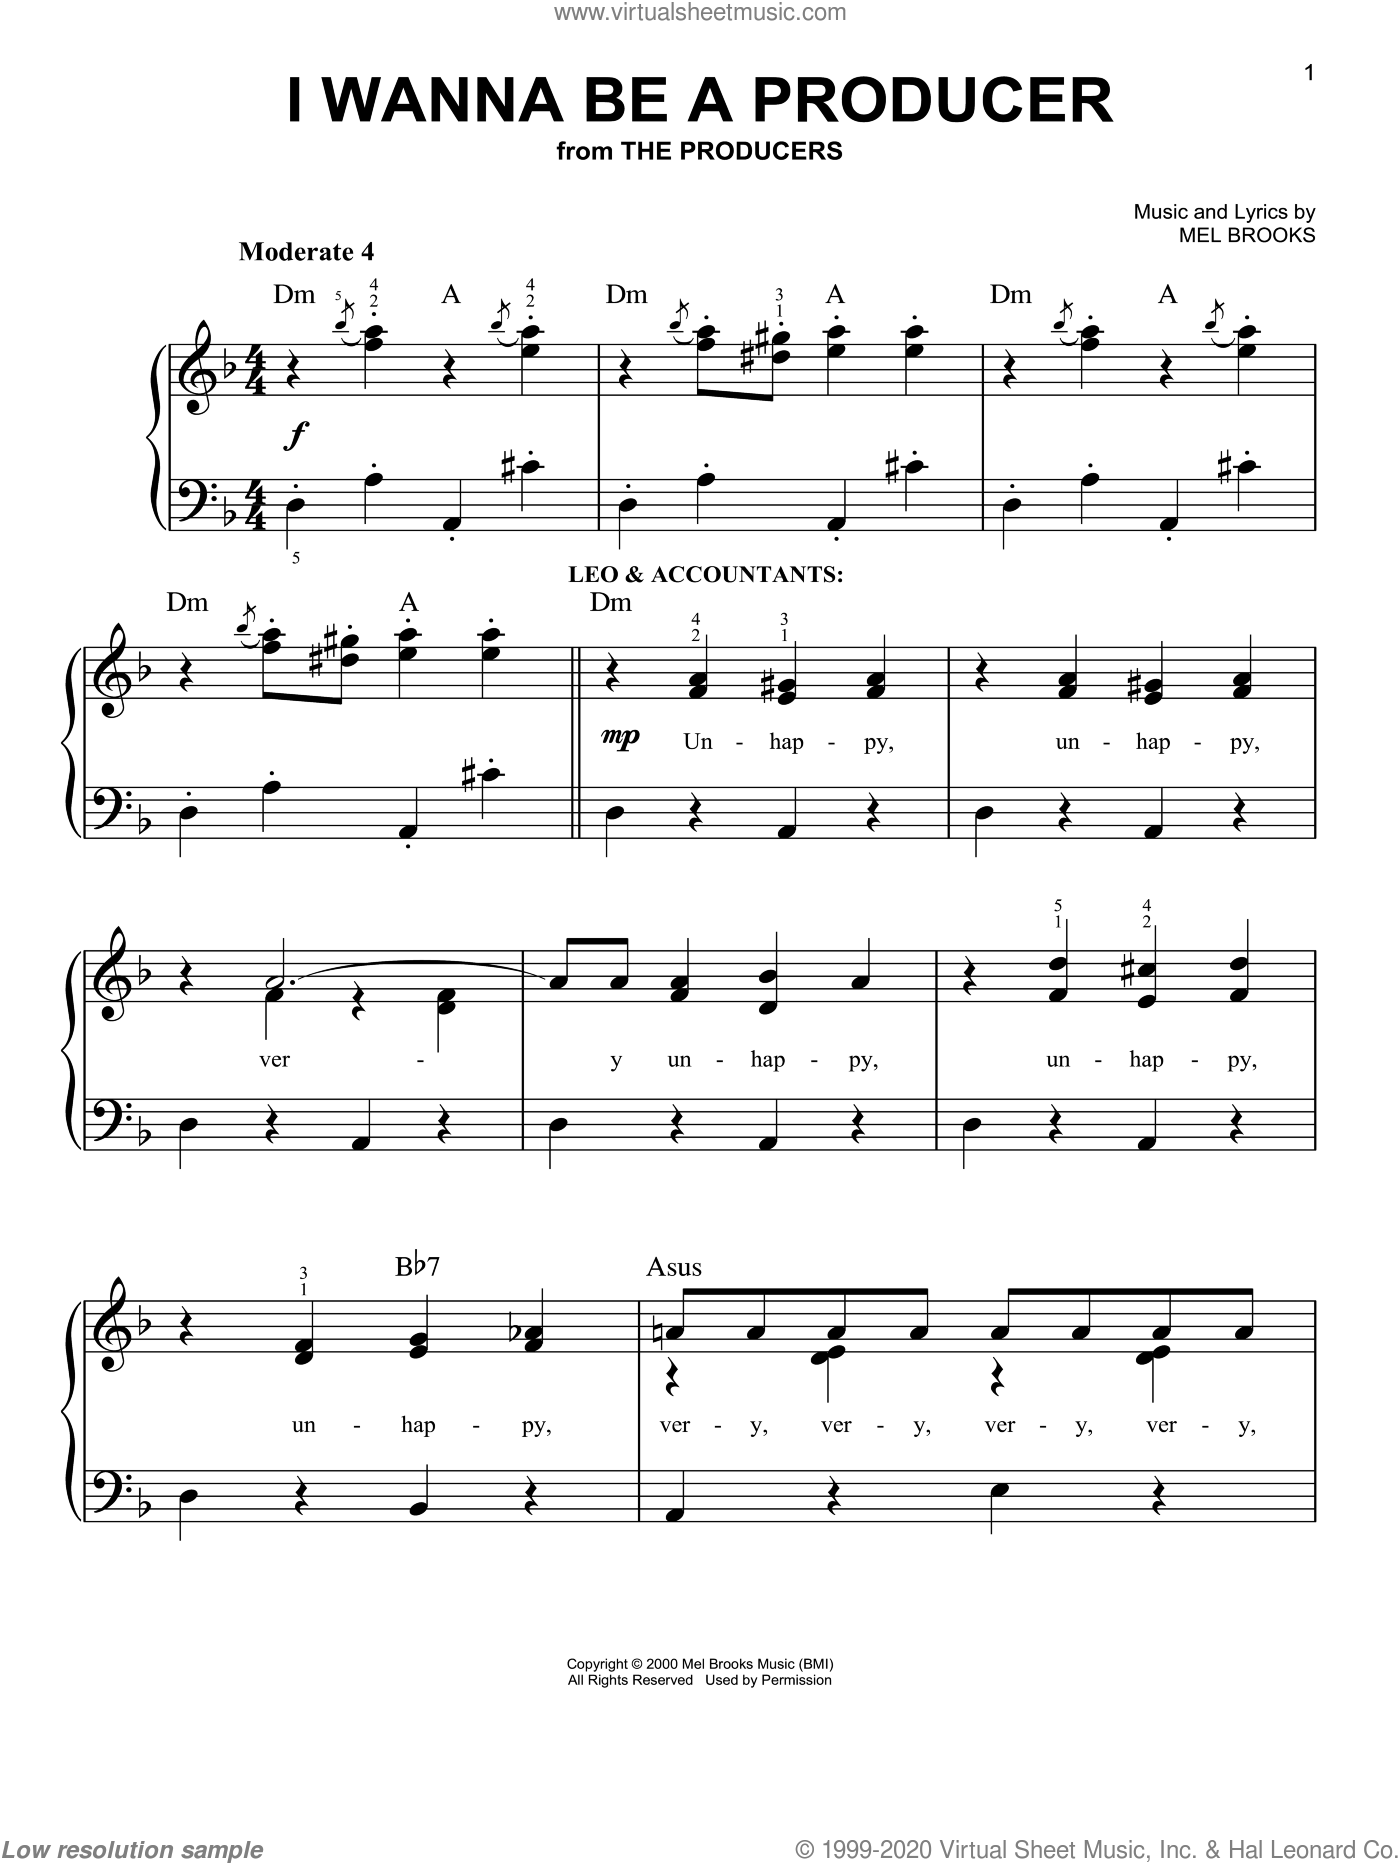 I Wanna Be A Producer sheet music for piano solo (chords) by Mel Brooks